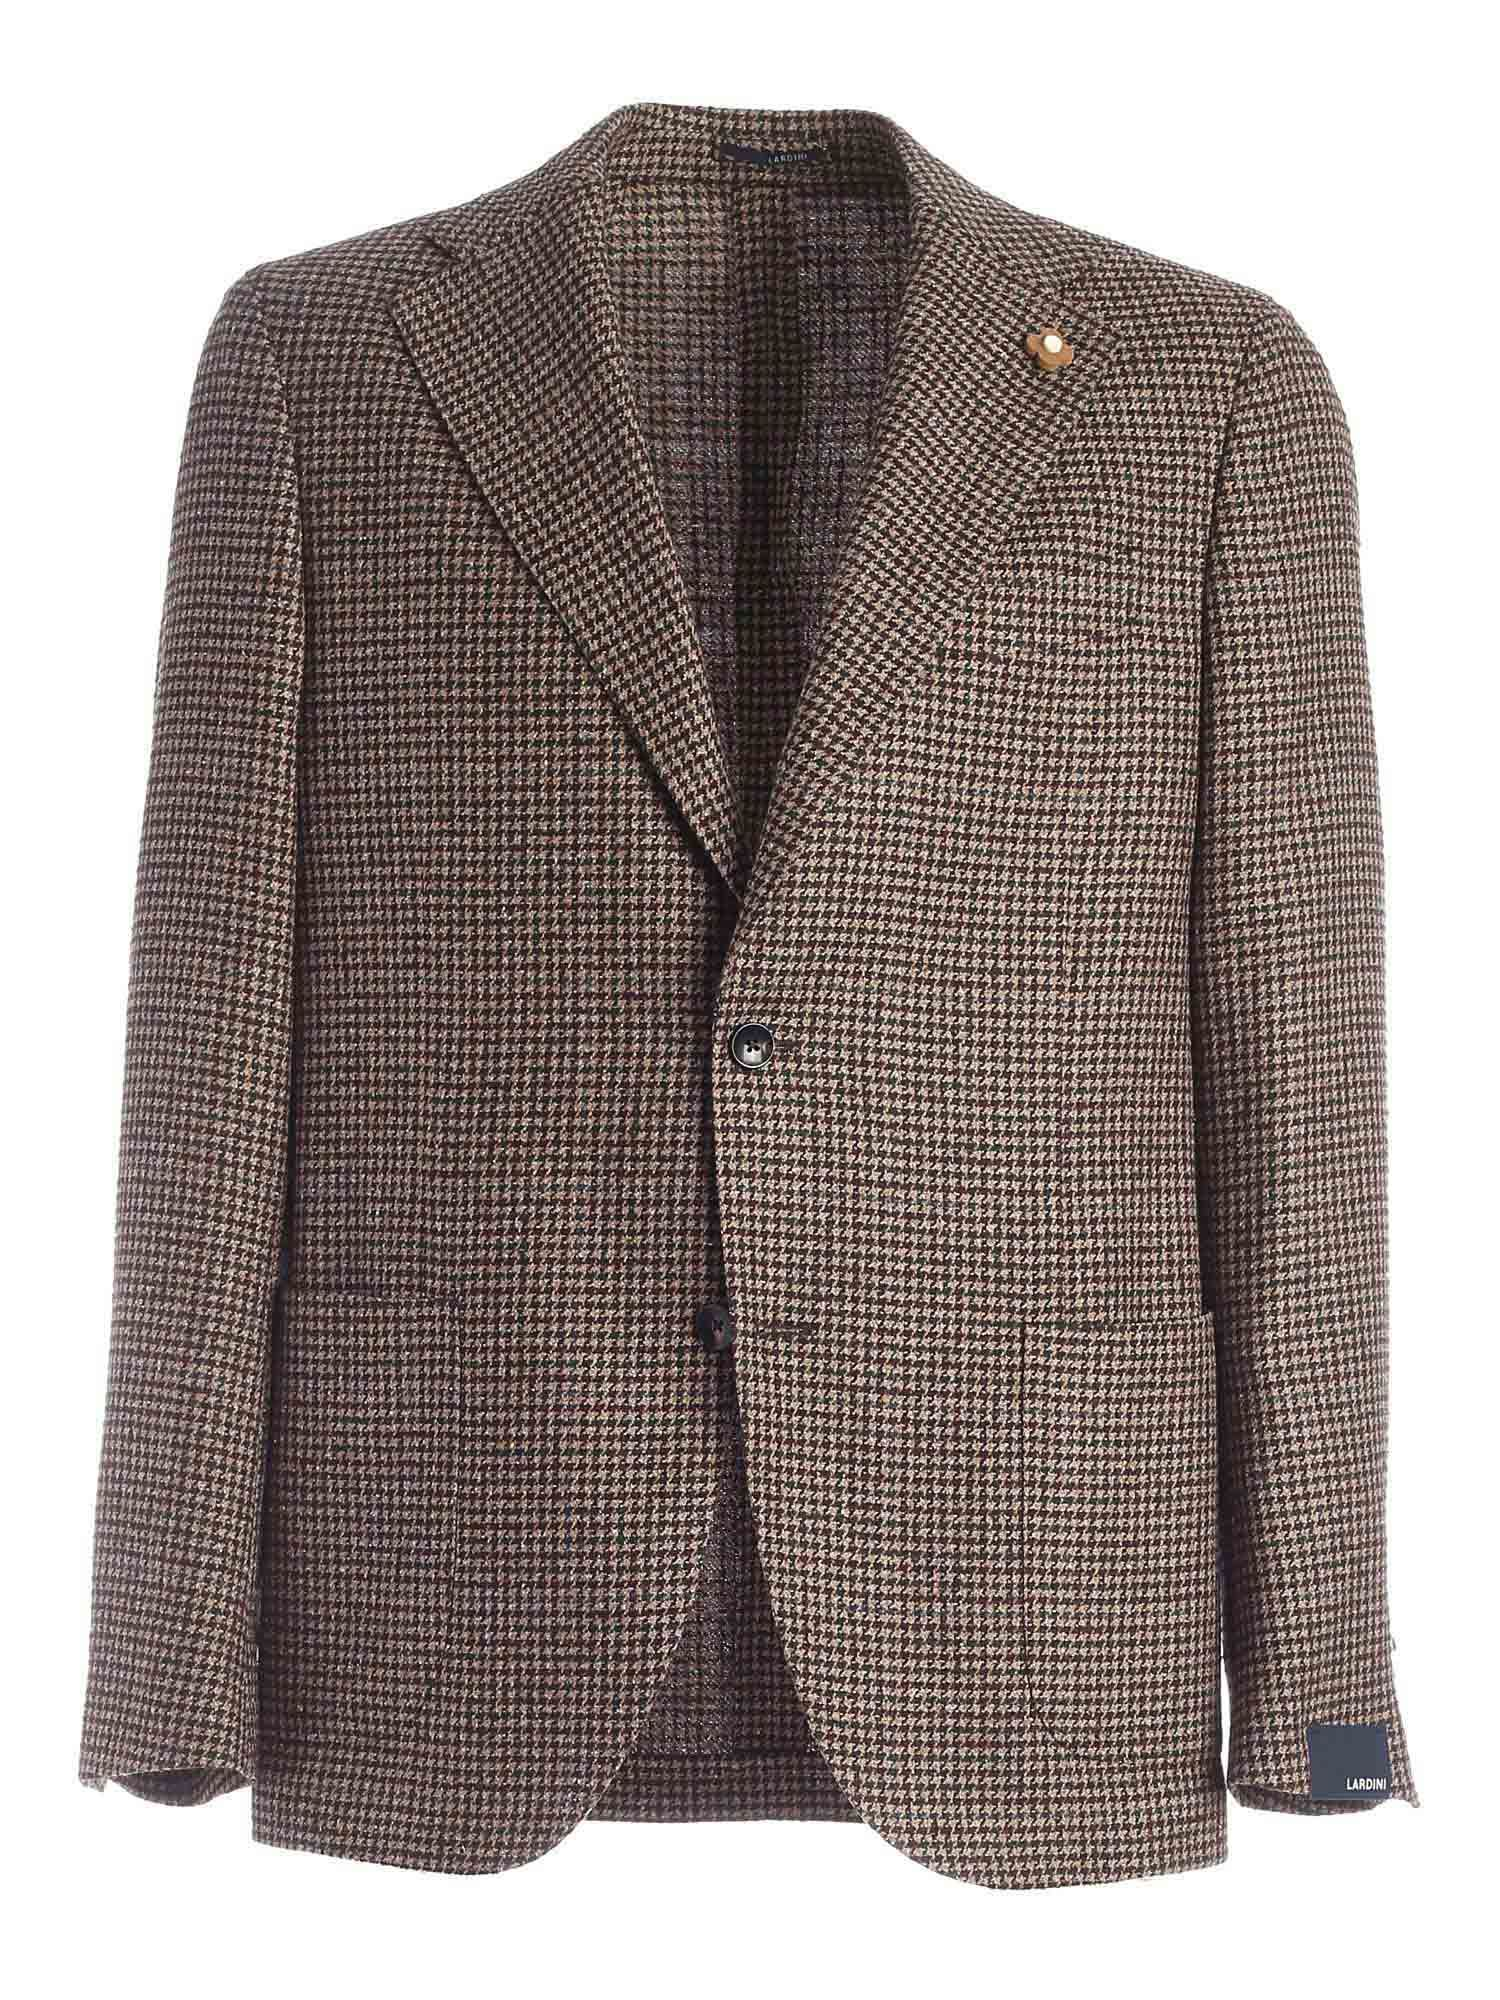 Lardini SINGLE-BREASTED JACKET IN BROWN